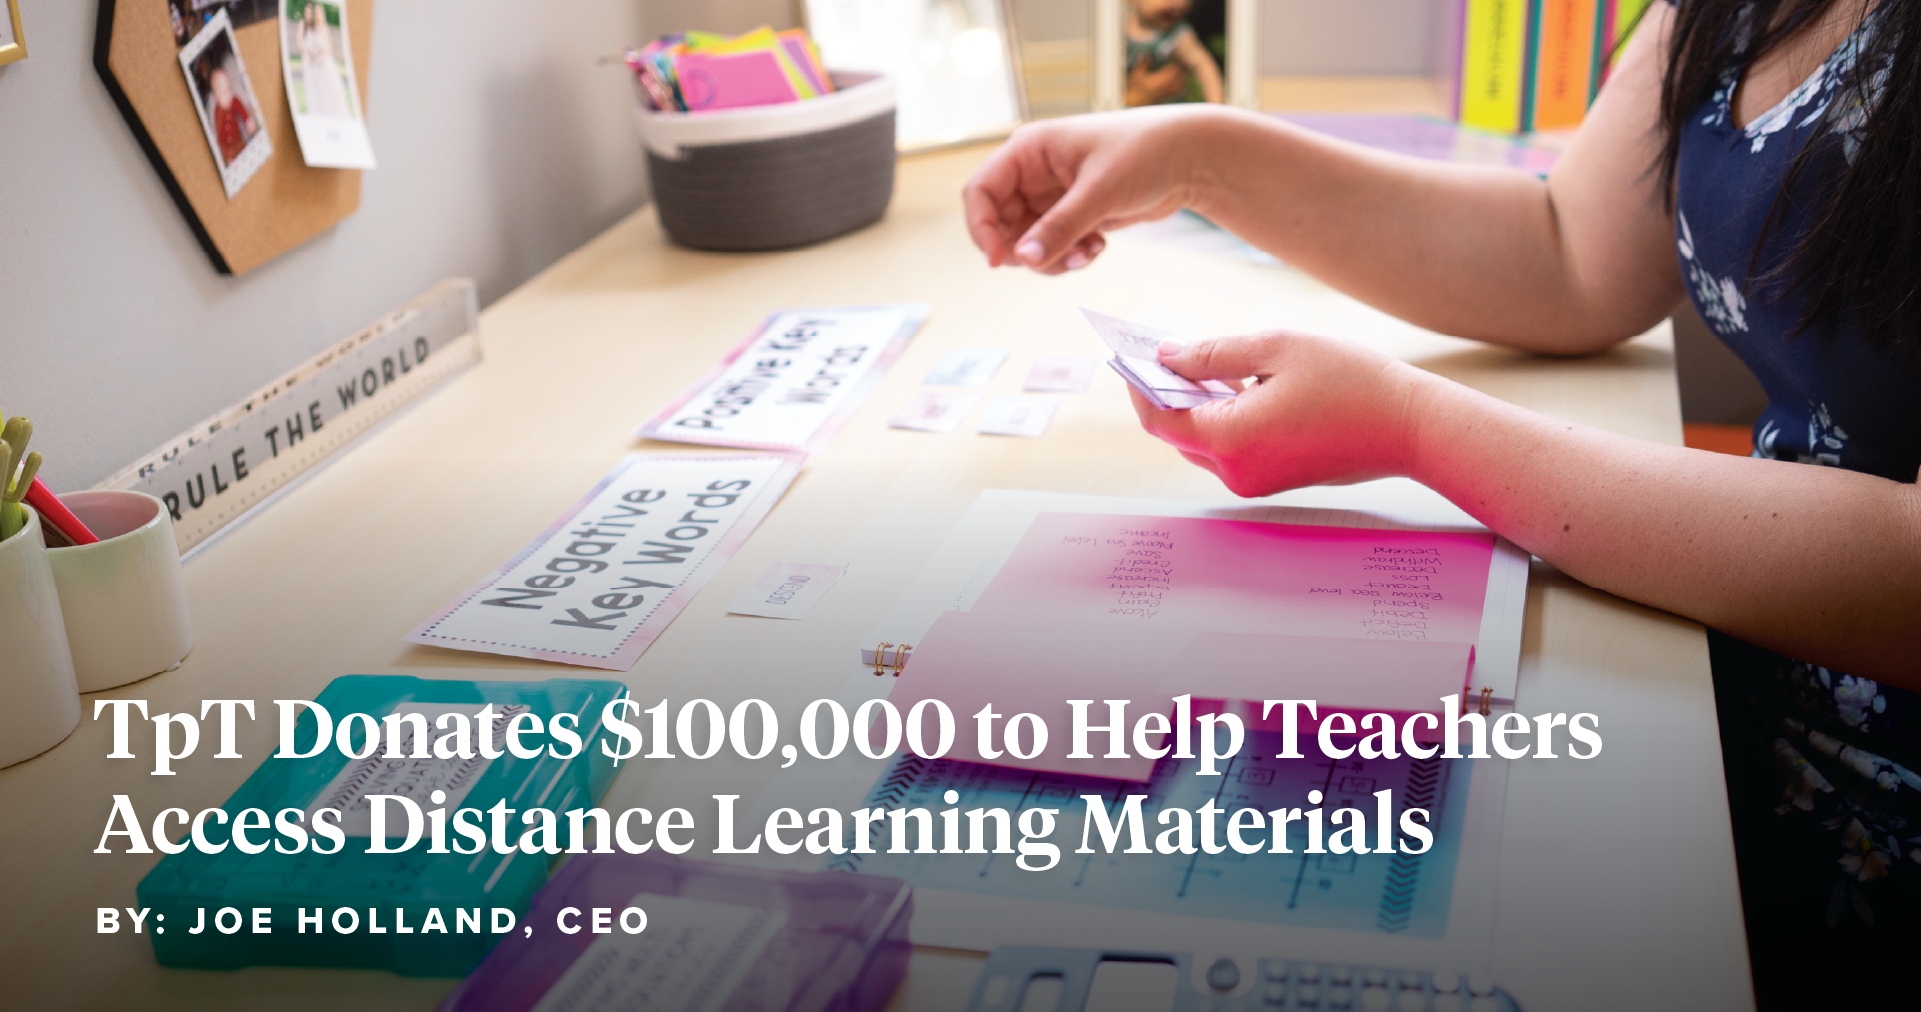 TpT Donates $100,000 to Help Teachers Access Distance Learning Materials